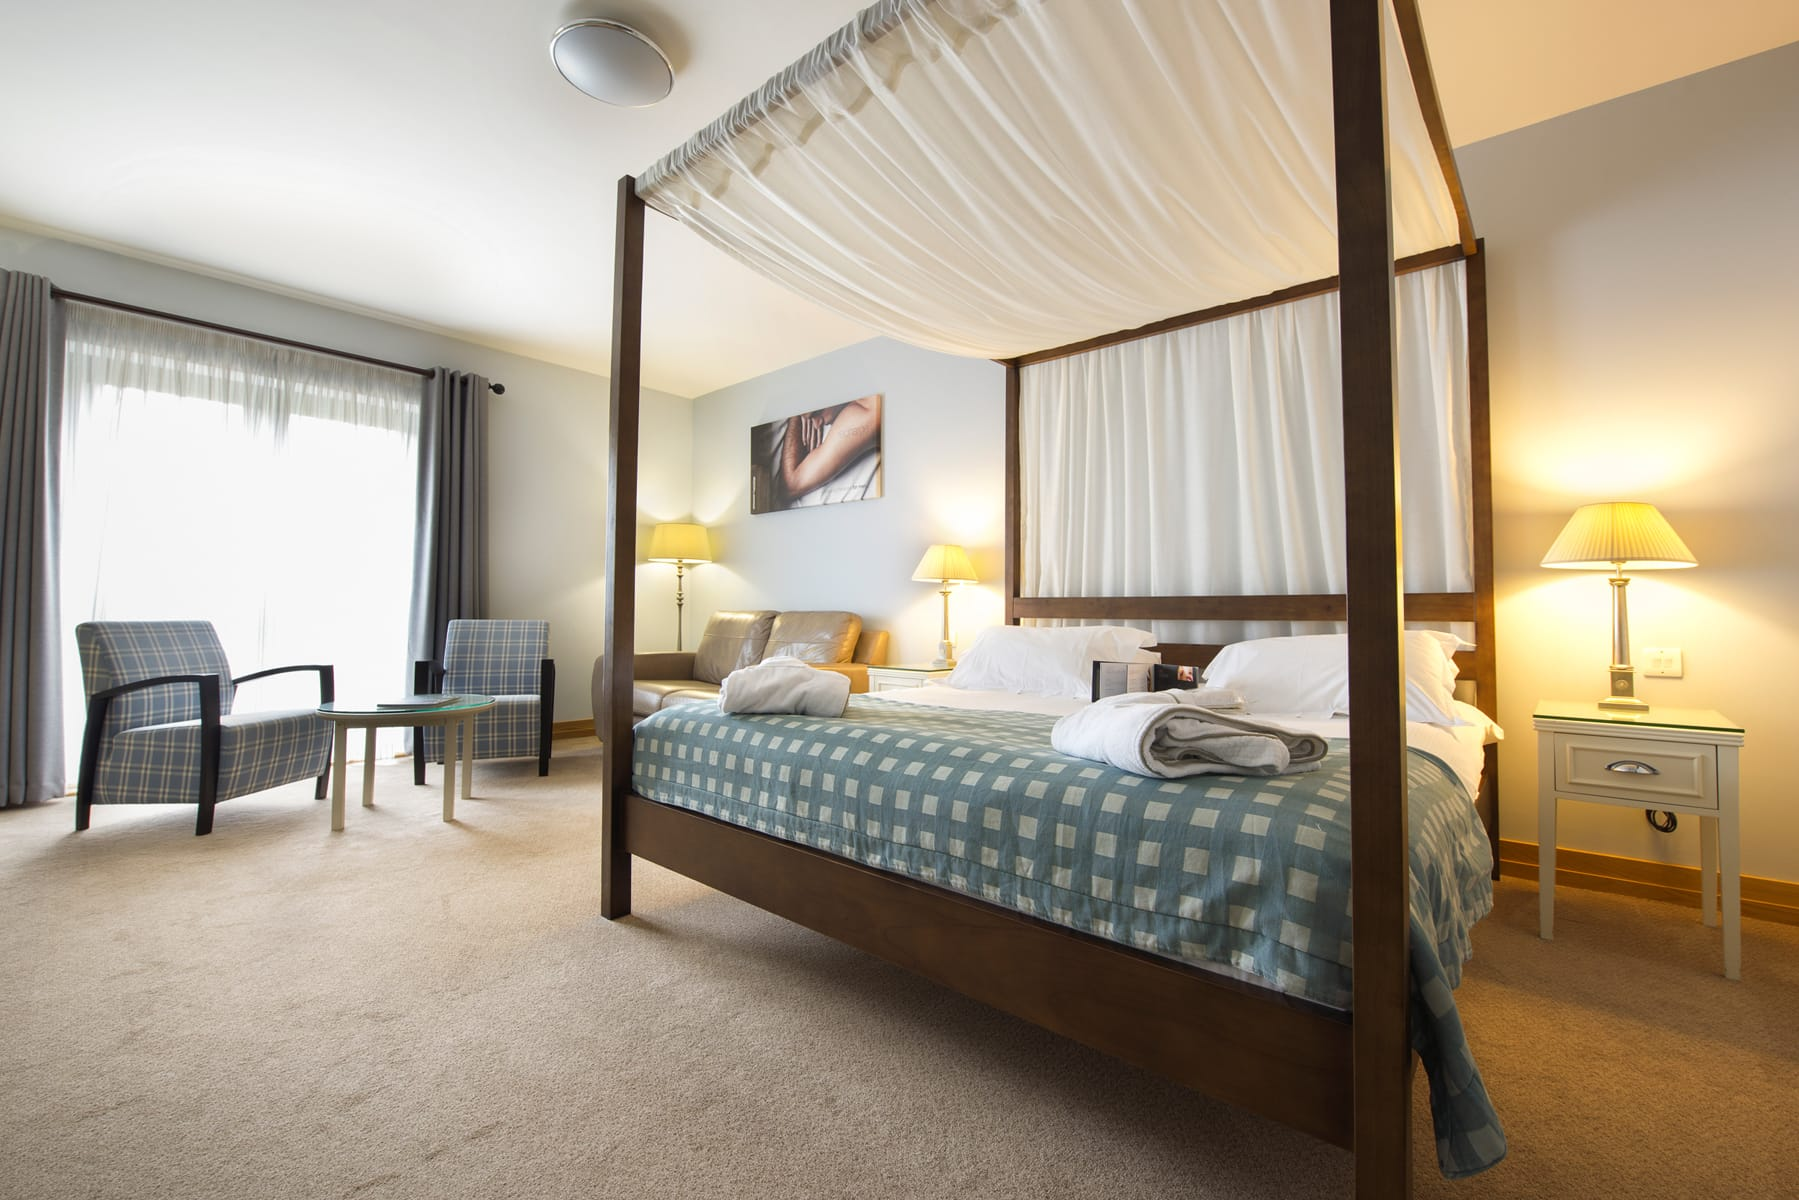 Feature room, four poster bed